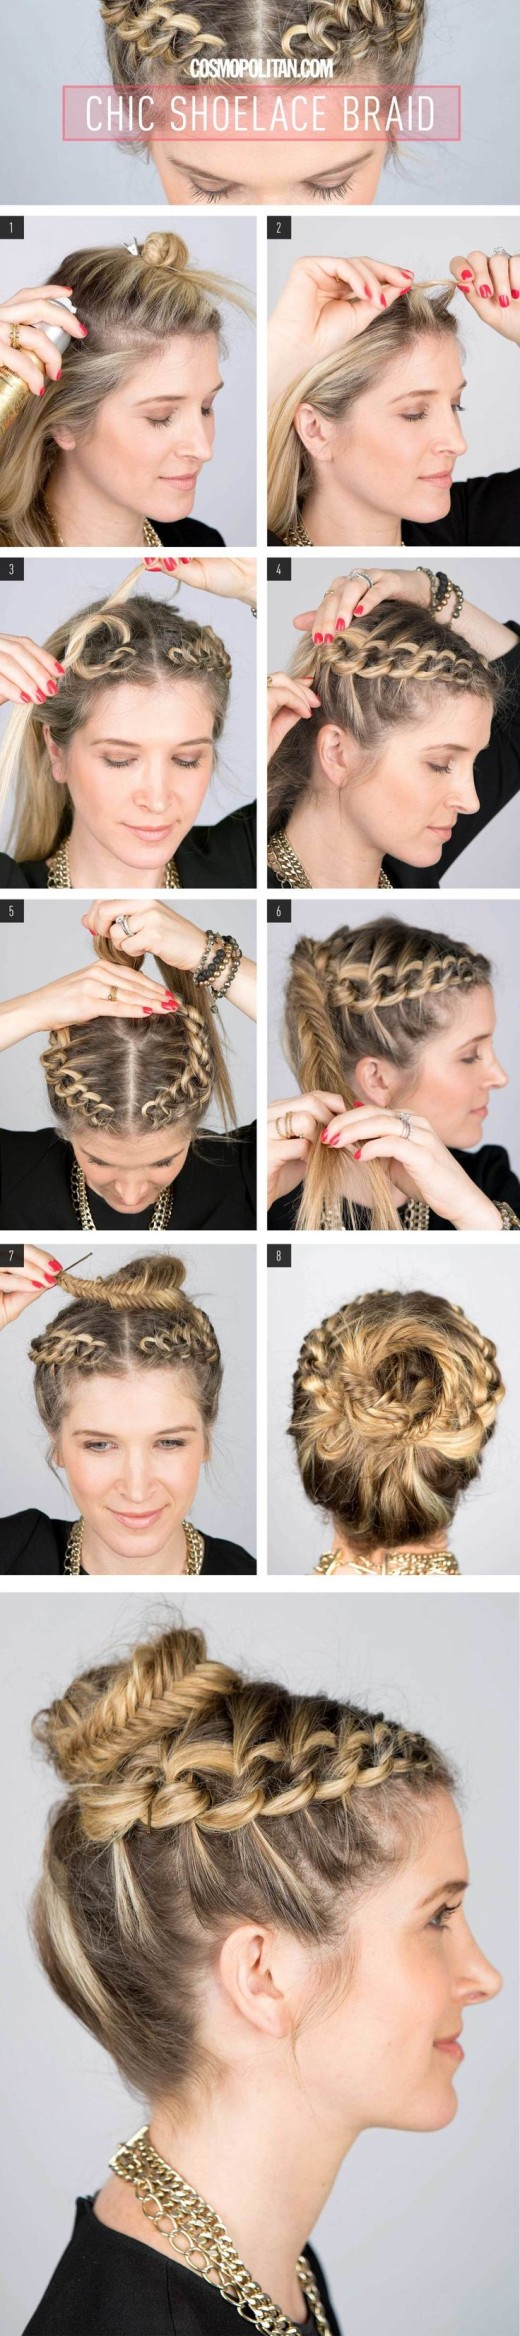 How to create a shoelace braid updou maybe just do it on one side